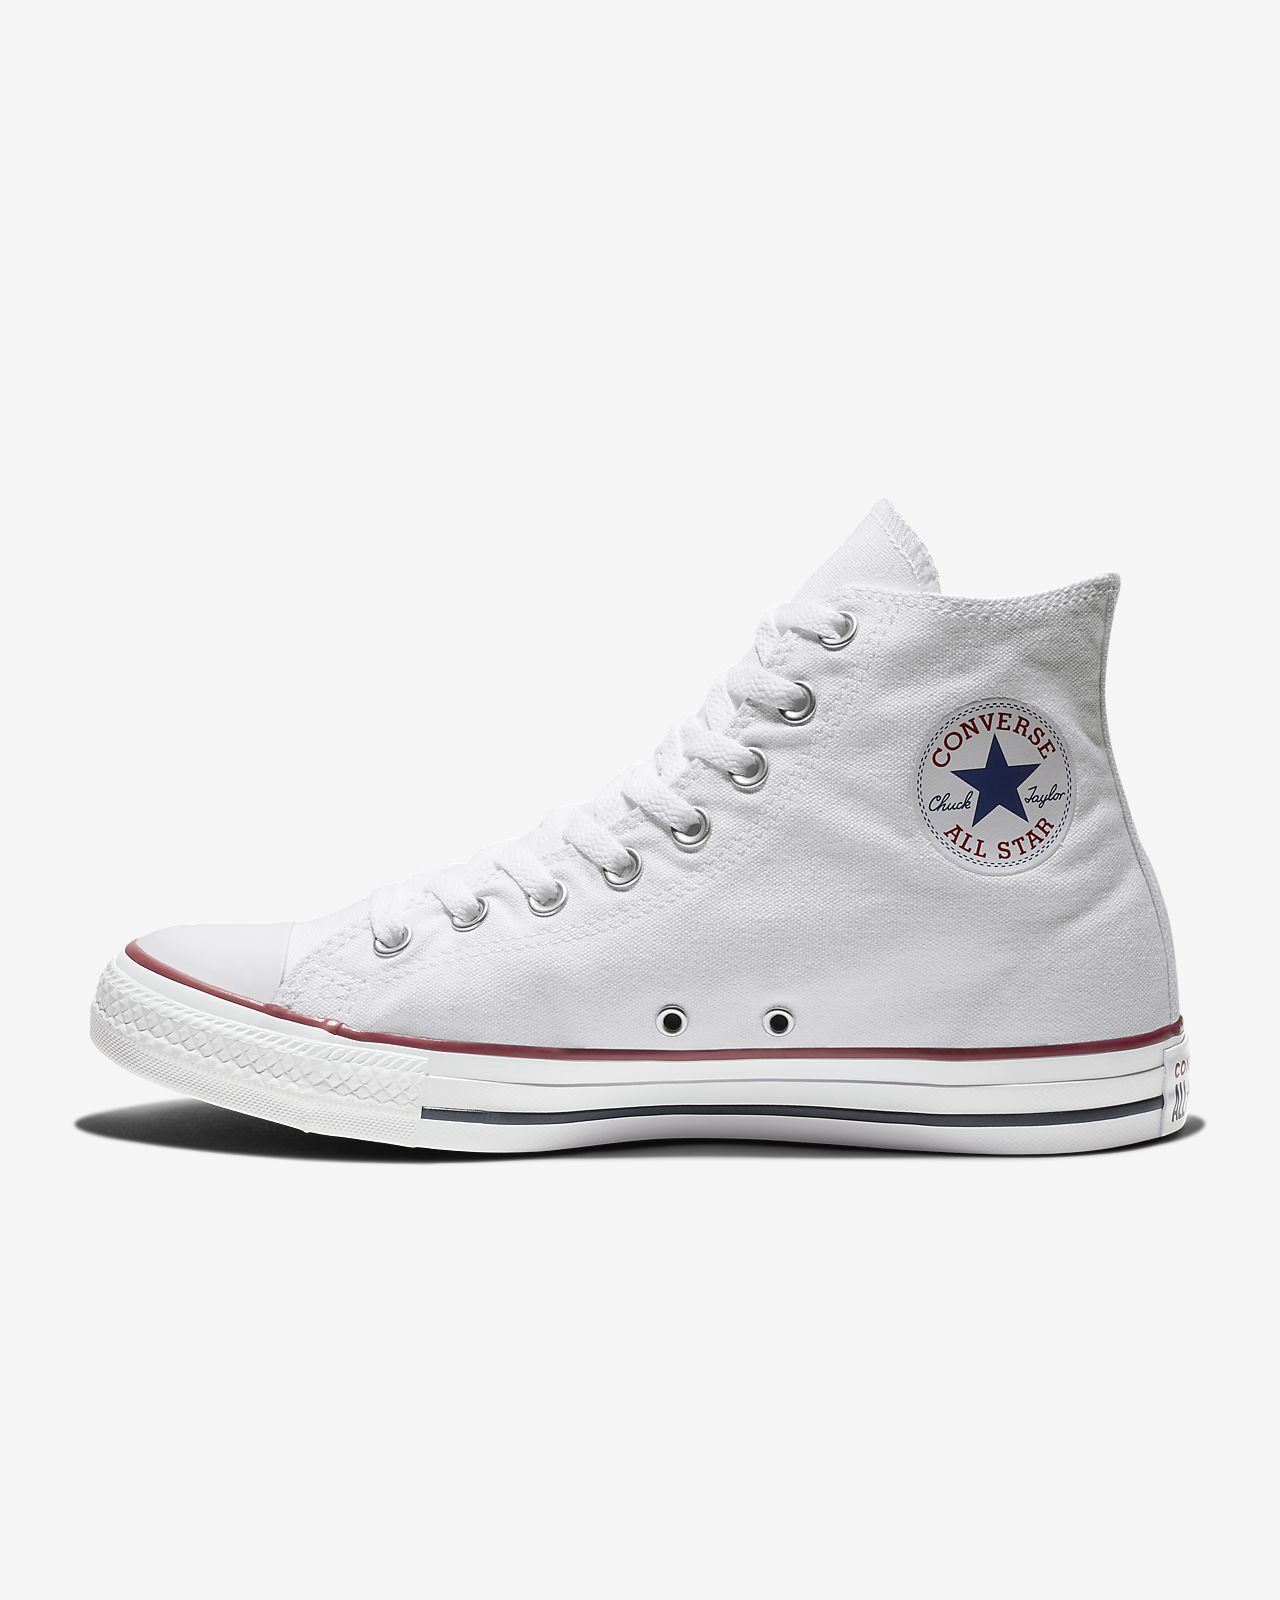 903cf4651d3971 Converse Chuck Taylor All Star High Top Unisex Shoe. Nike. ...